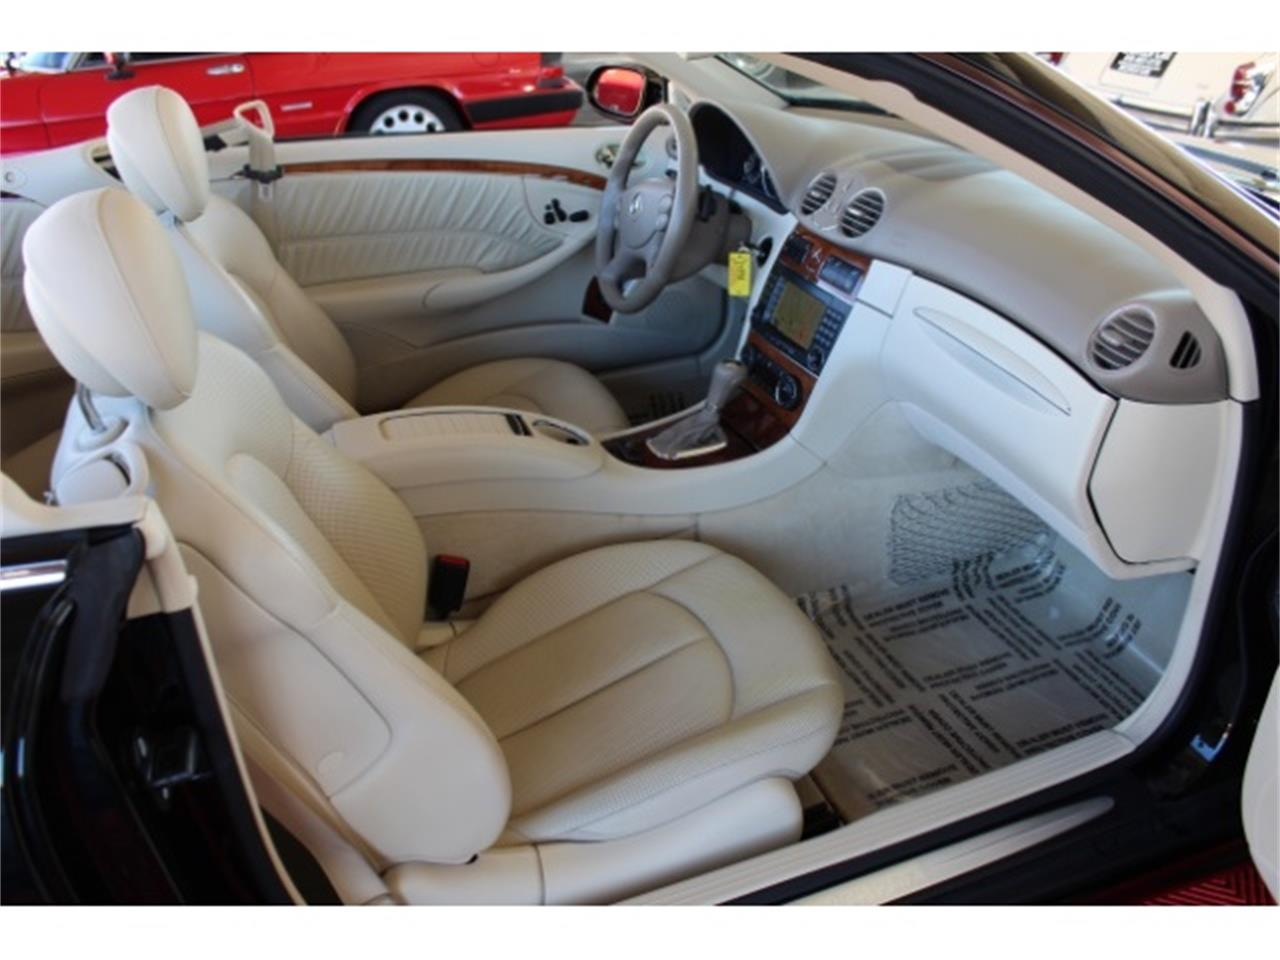 2007 Mercedes-Benz CLK-Class for sale in Sherman Oaks, CA – photo 15